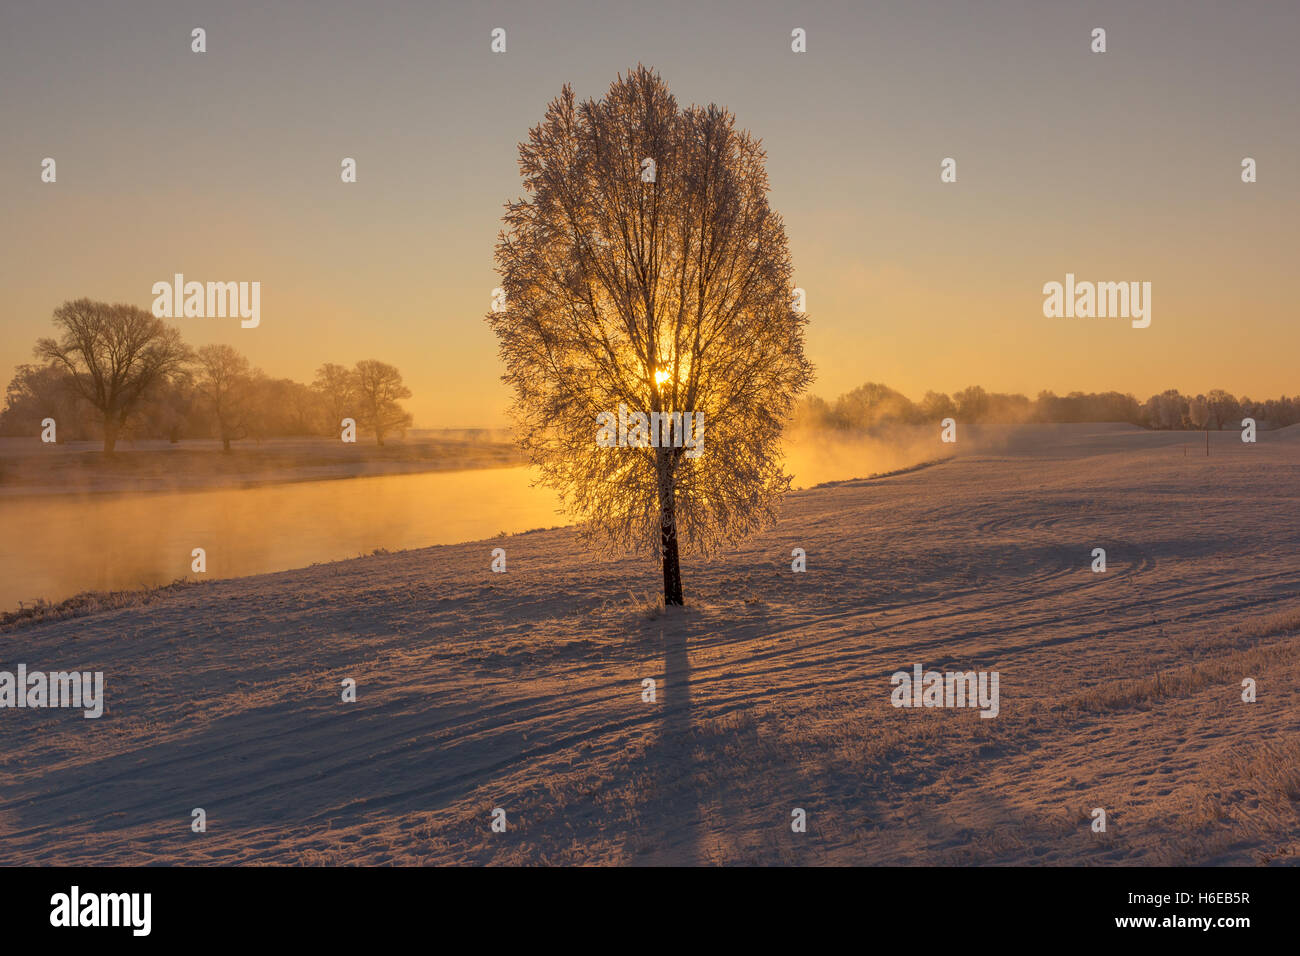 Fog at the Elbe river near Torgau during a winter sunrise. Focus on tree Stock Photo